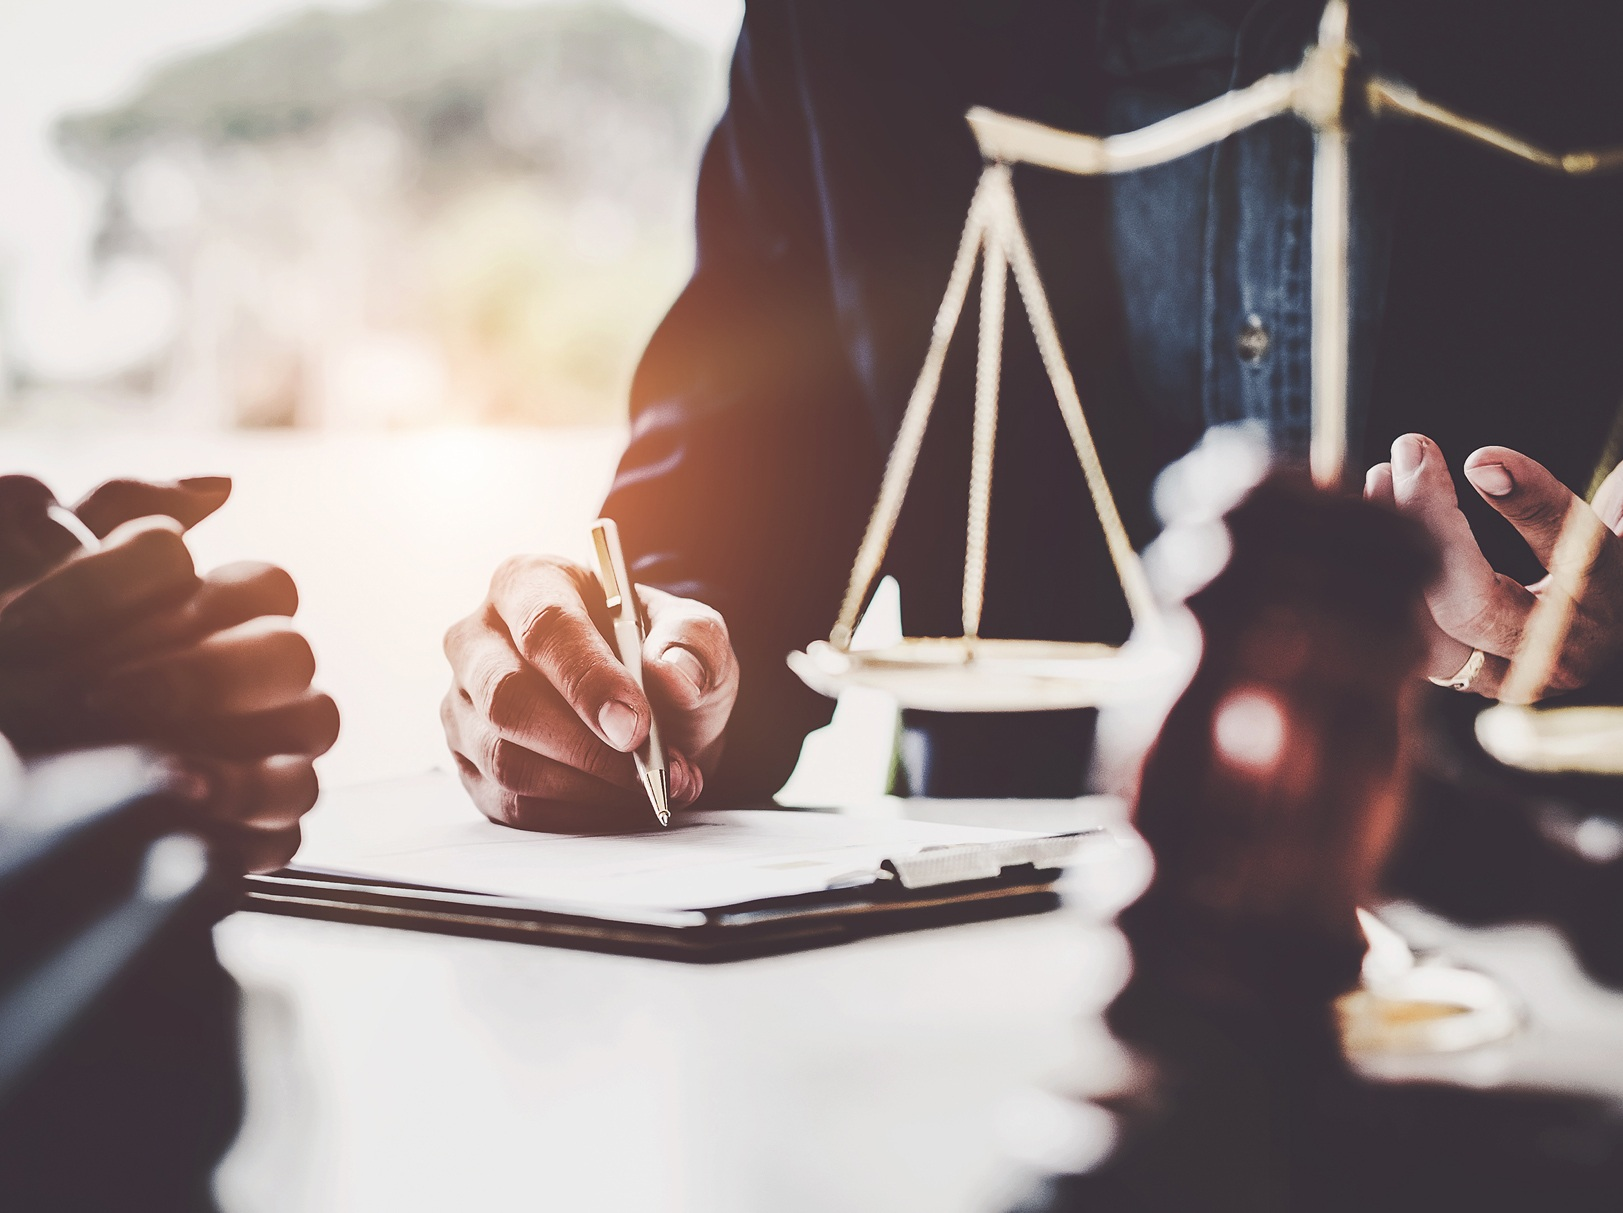 About Us - At Shultz Law Office, P.A., we are ready to fight for you. Our commitment and dedication have resulted in many courtroom victories. But our preparation and counsel help clients achieve notable results outside of the courtroom as well.